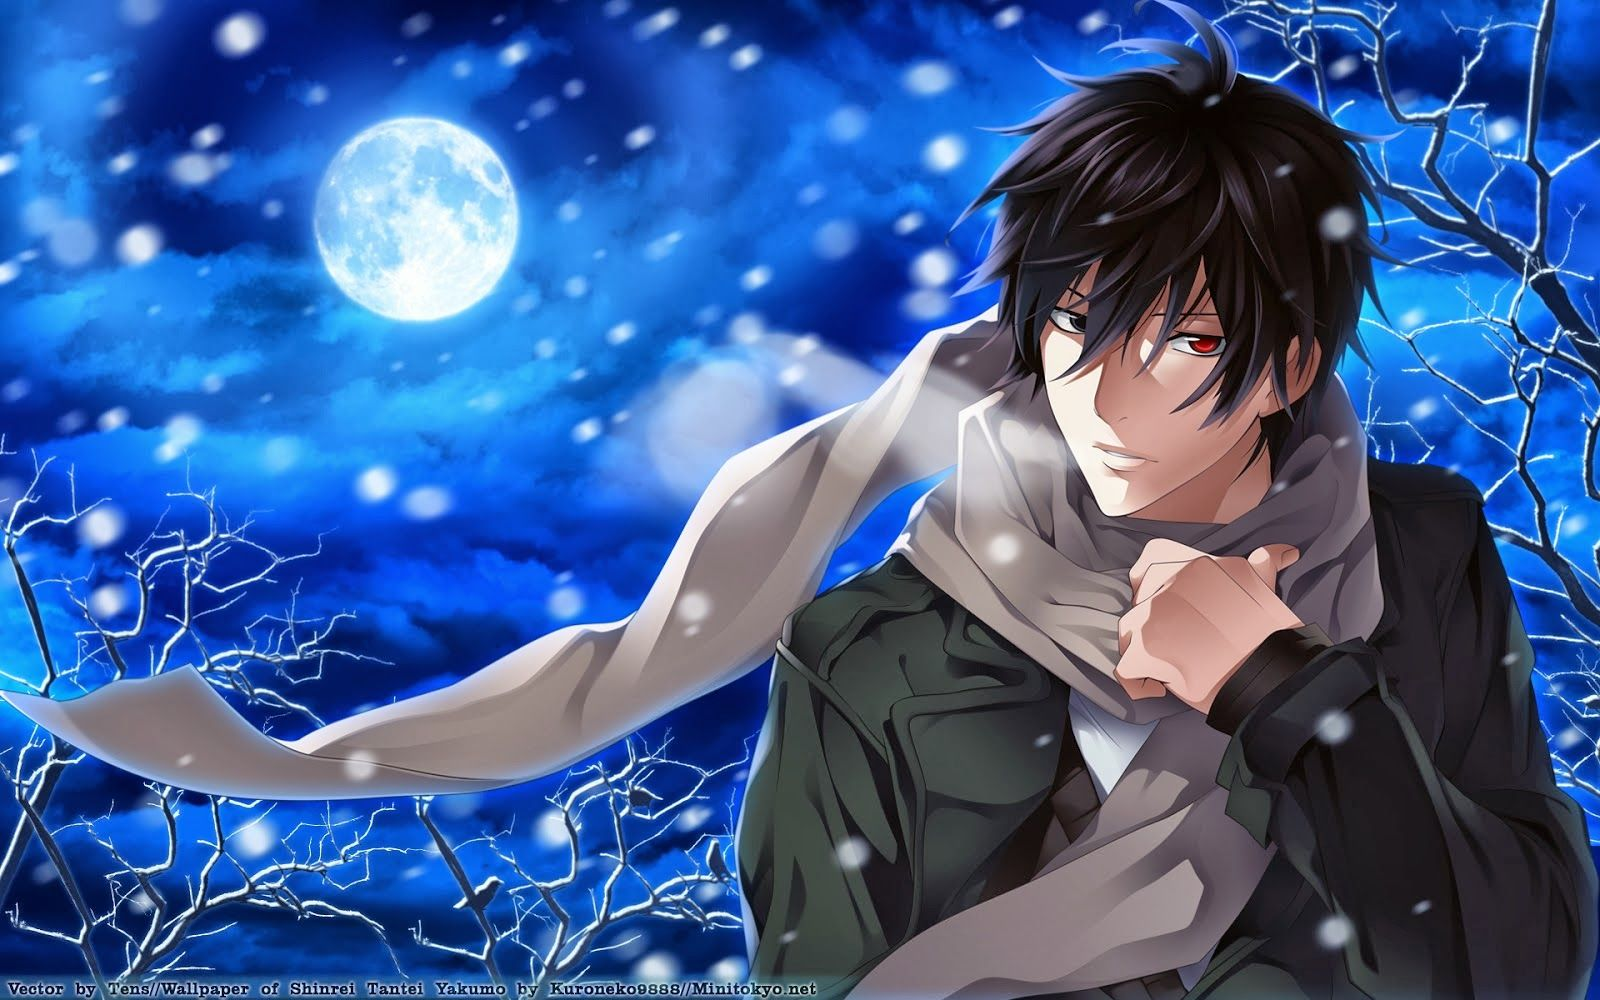 Anime Boy Wallpapers Hd Anime Boy Anime Anime Guys